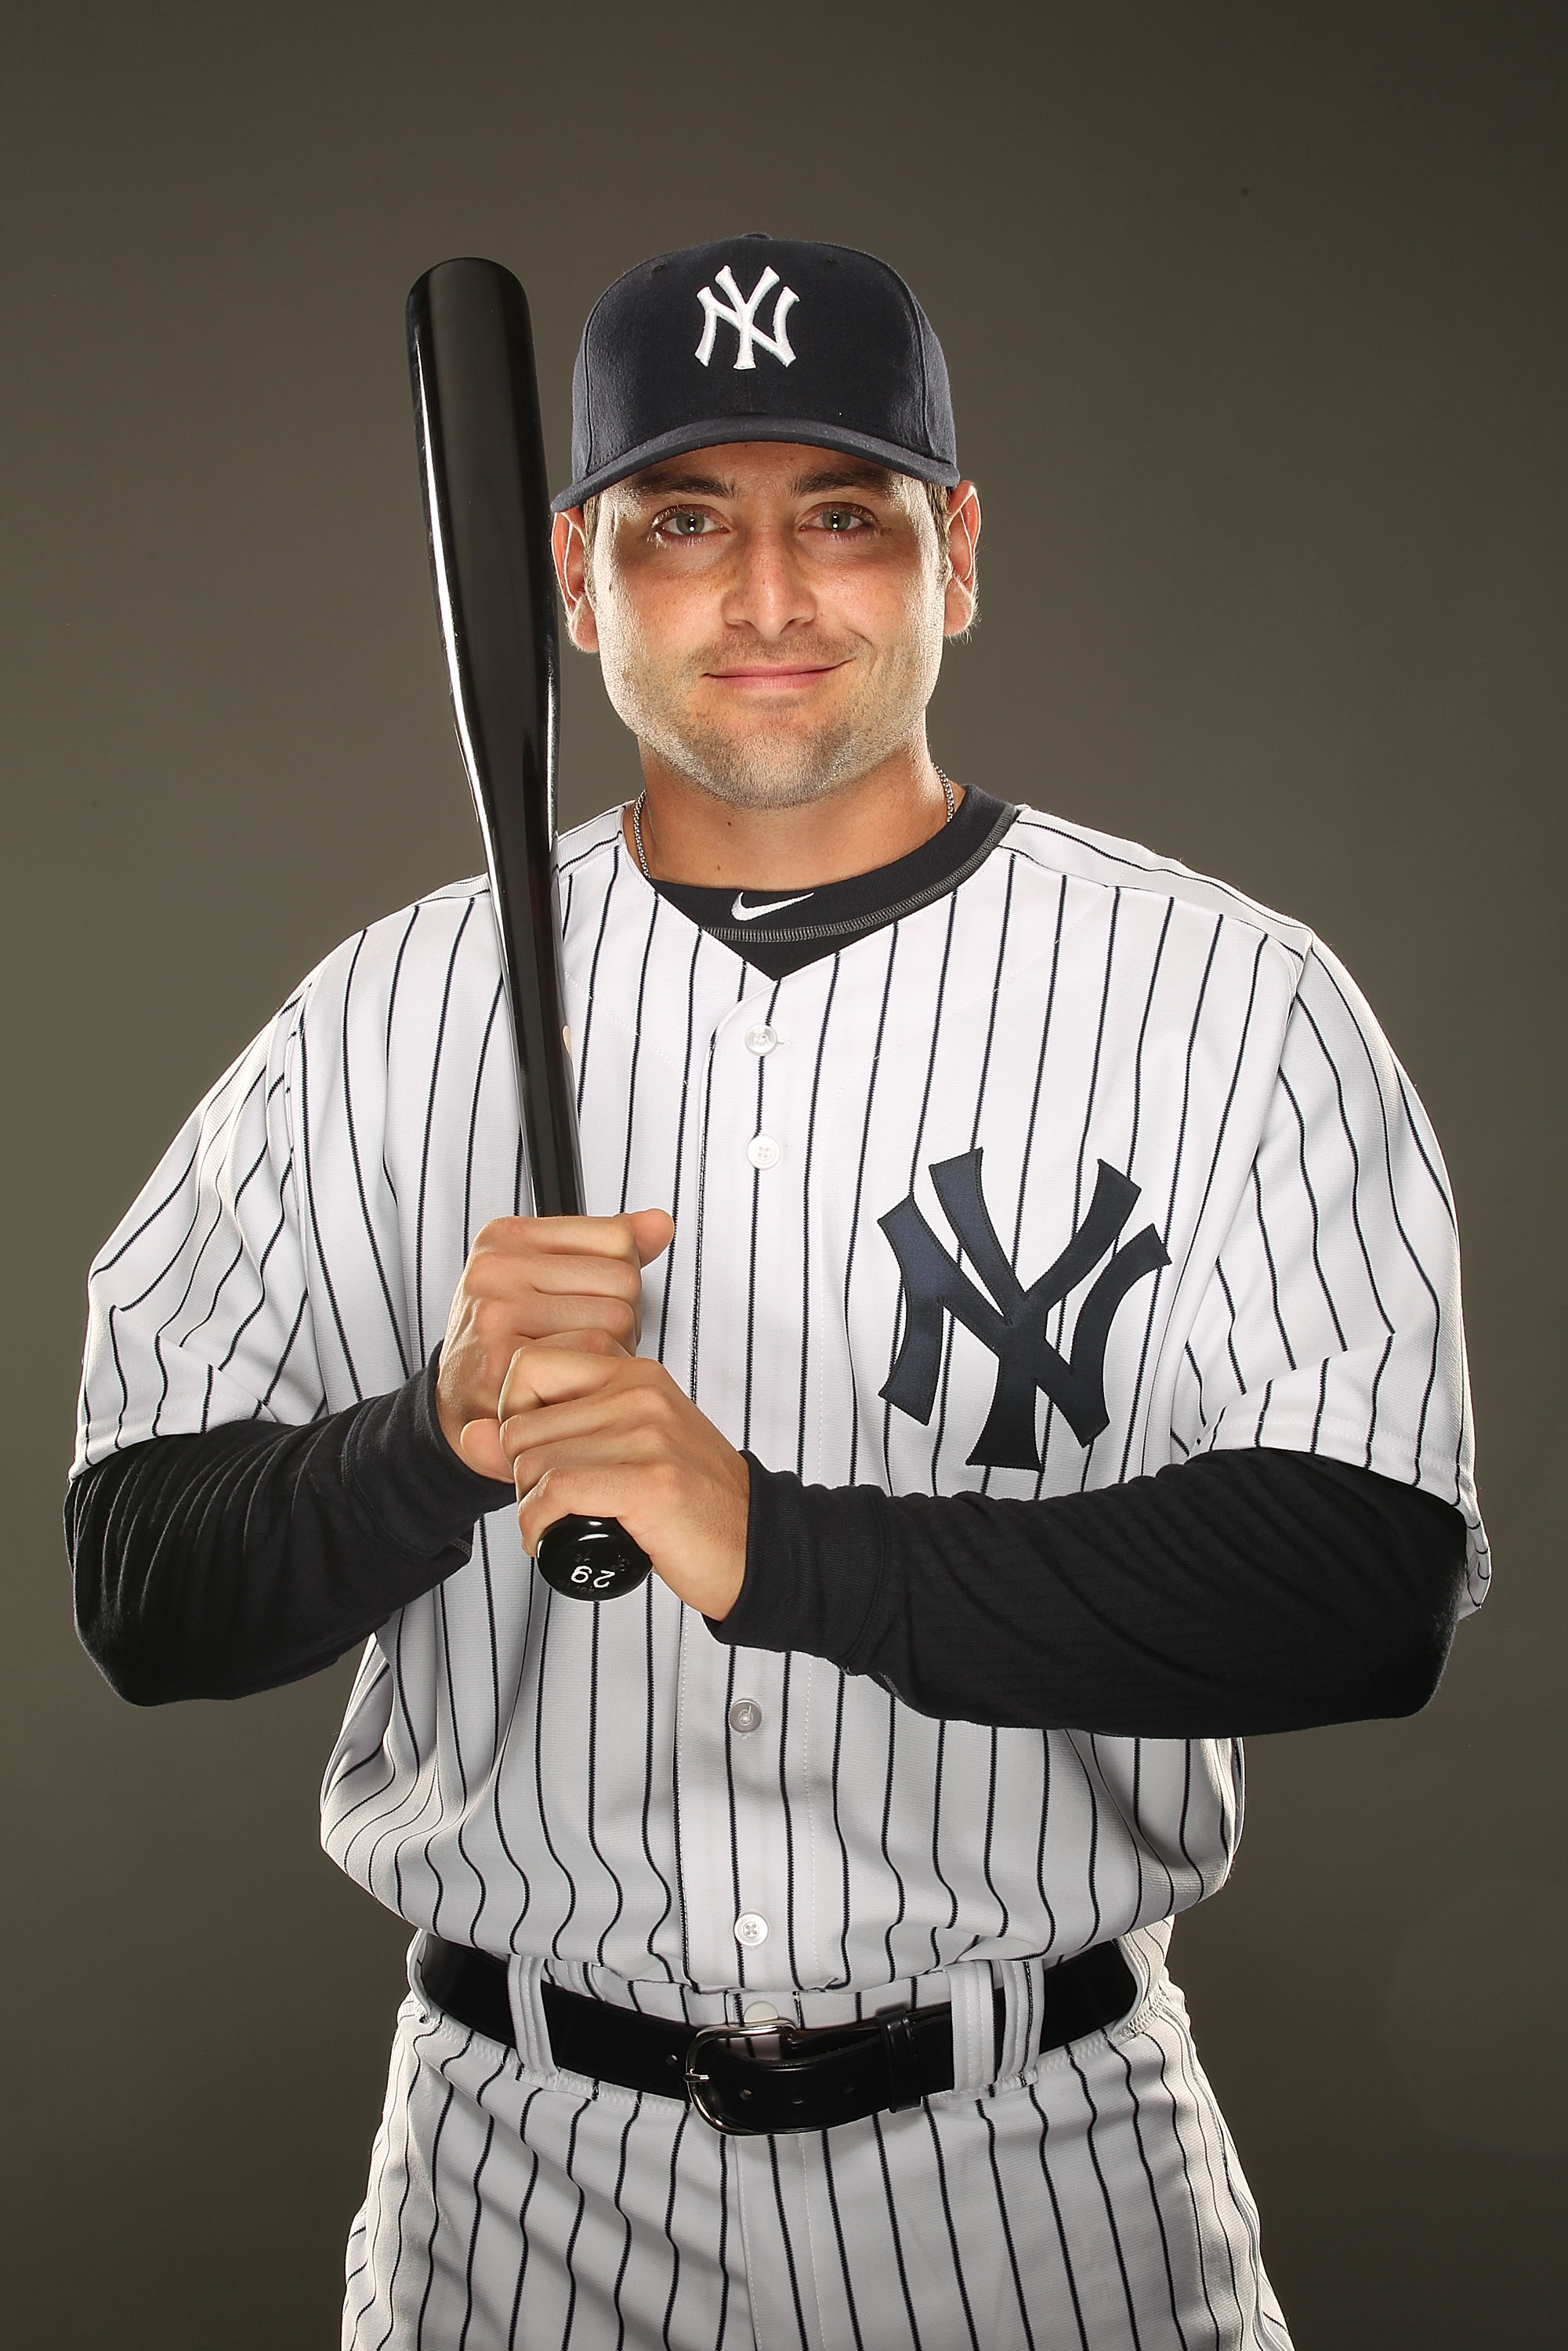 TAMPA, FL - FEBRUARY 23:  Francisco Cervelli #17 of the New York Yankees poses for a portrait on Photo Day at George M. Steinbrenner Field on February 23, 2011 in Tampa, Florida.  (Photo by Al Bello/Getty Images)